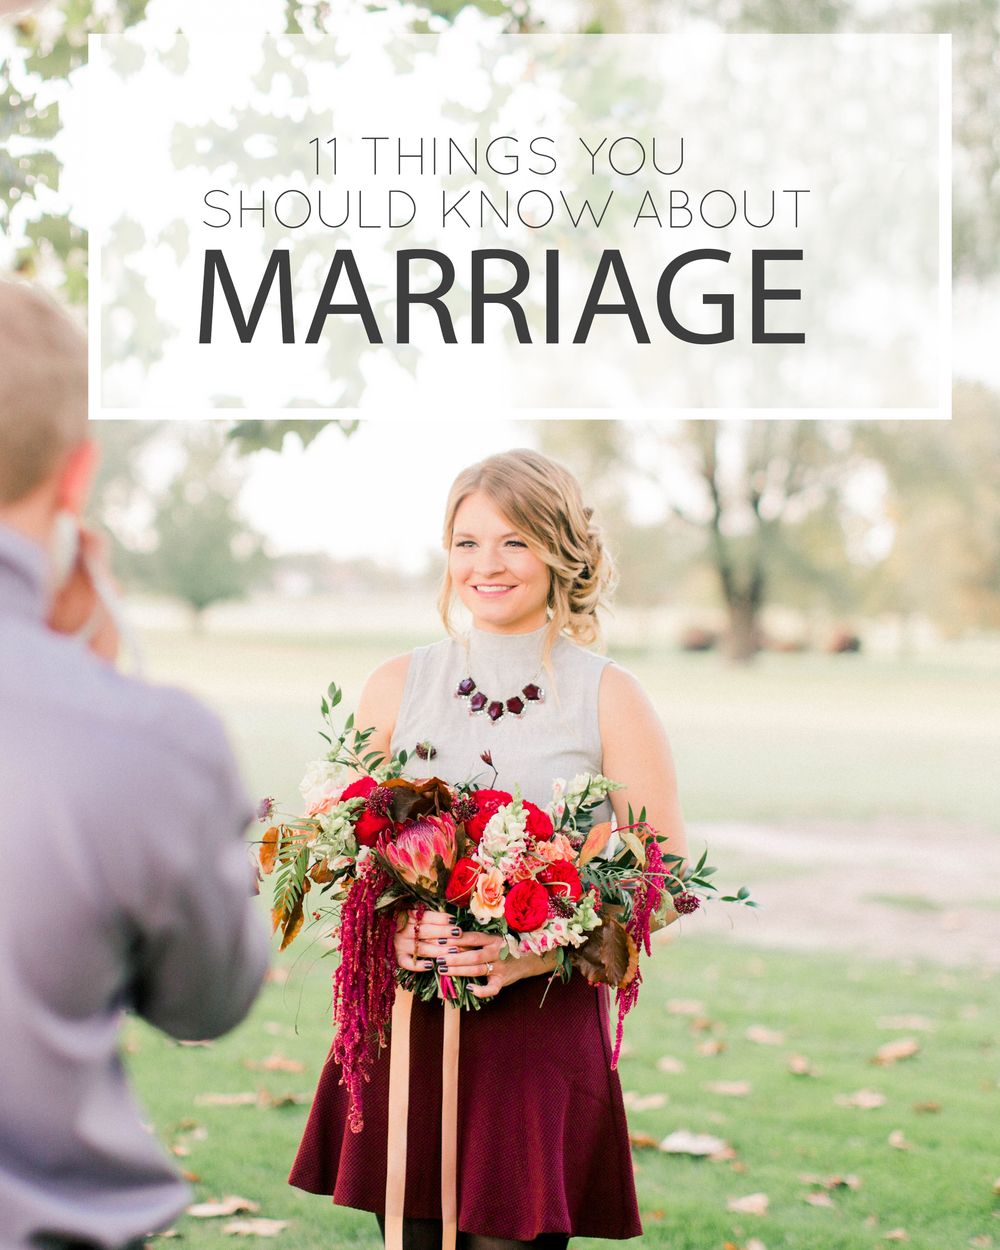 11 Things you should know about marriage